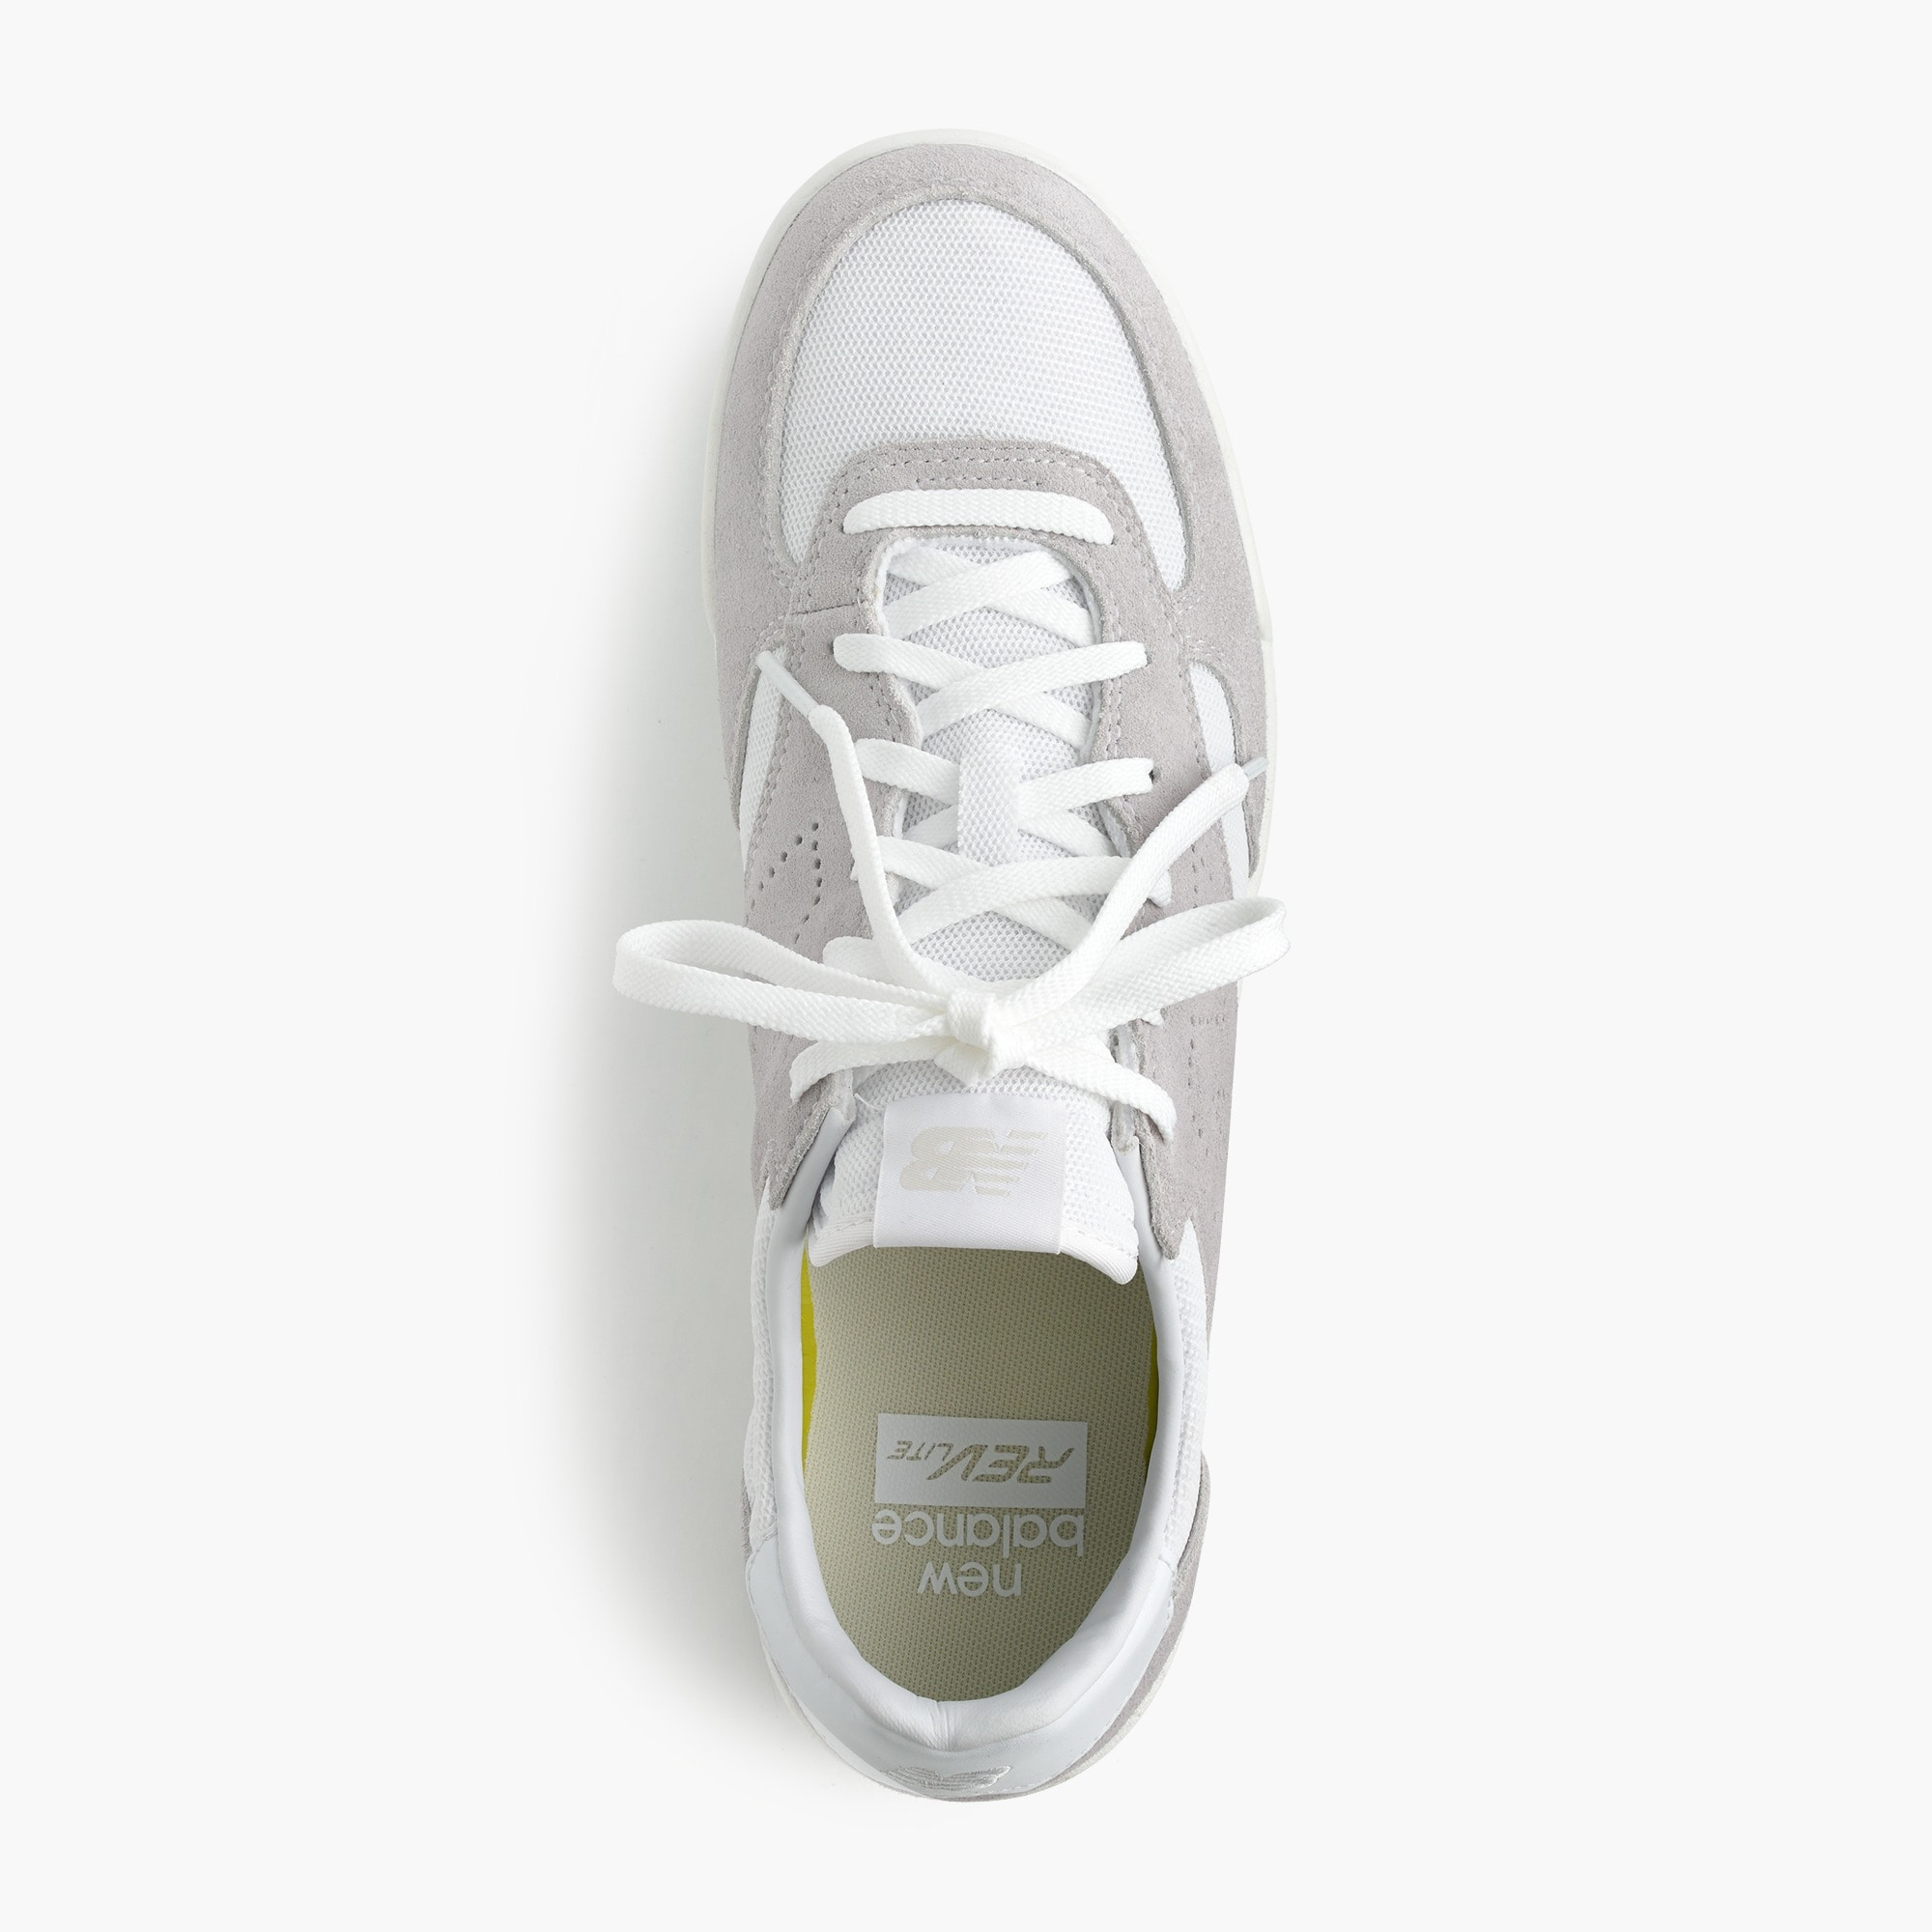 Image 1 for New Balance® CRT300 sneakers in white